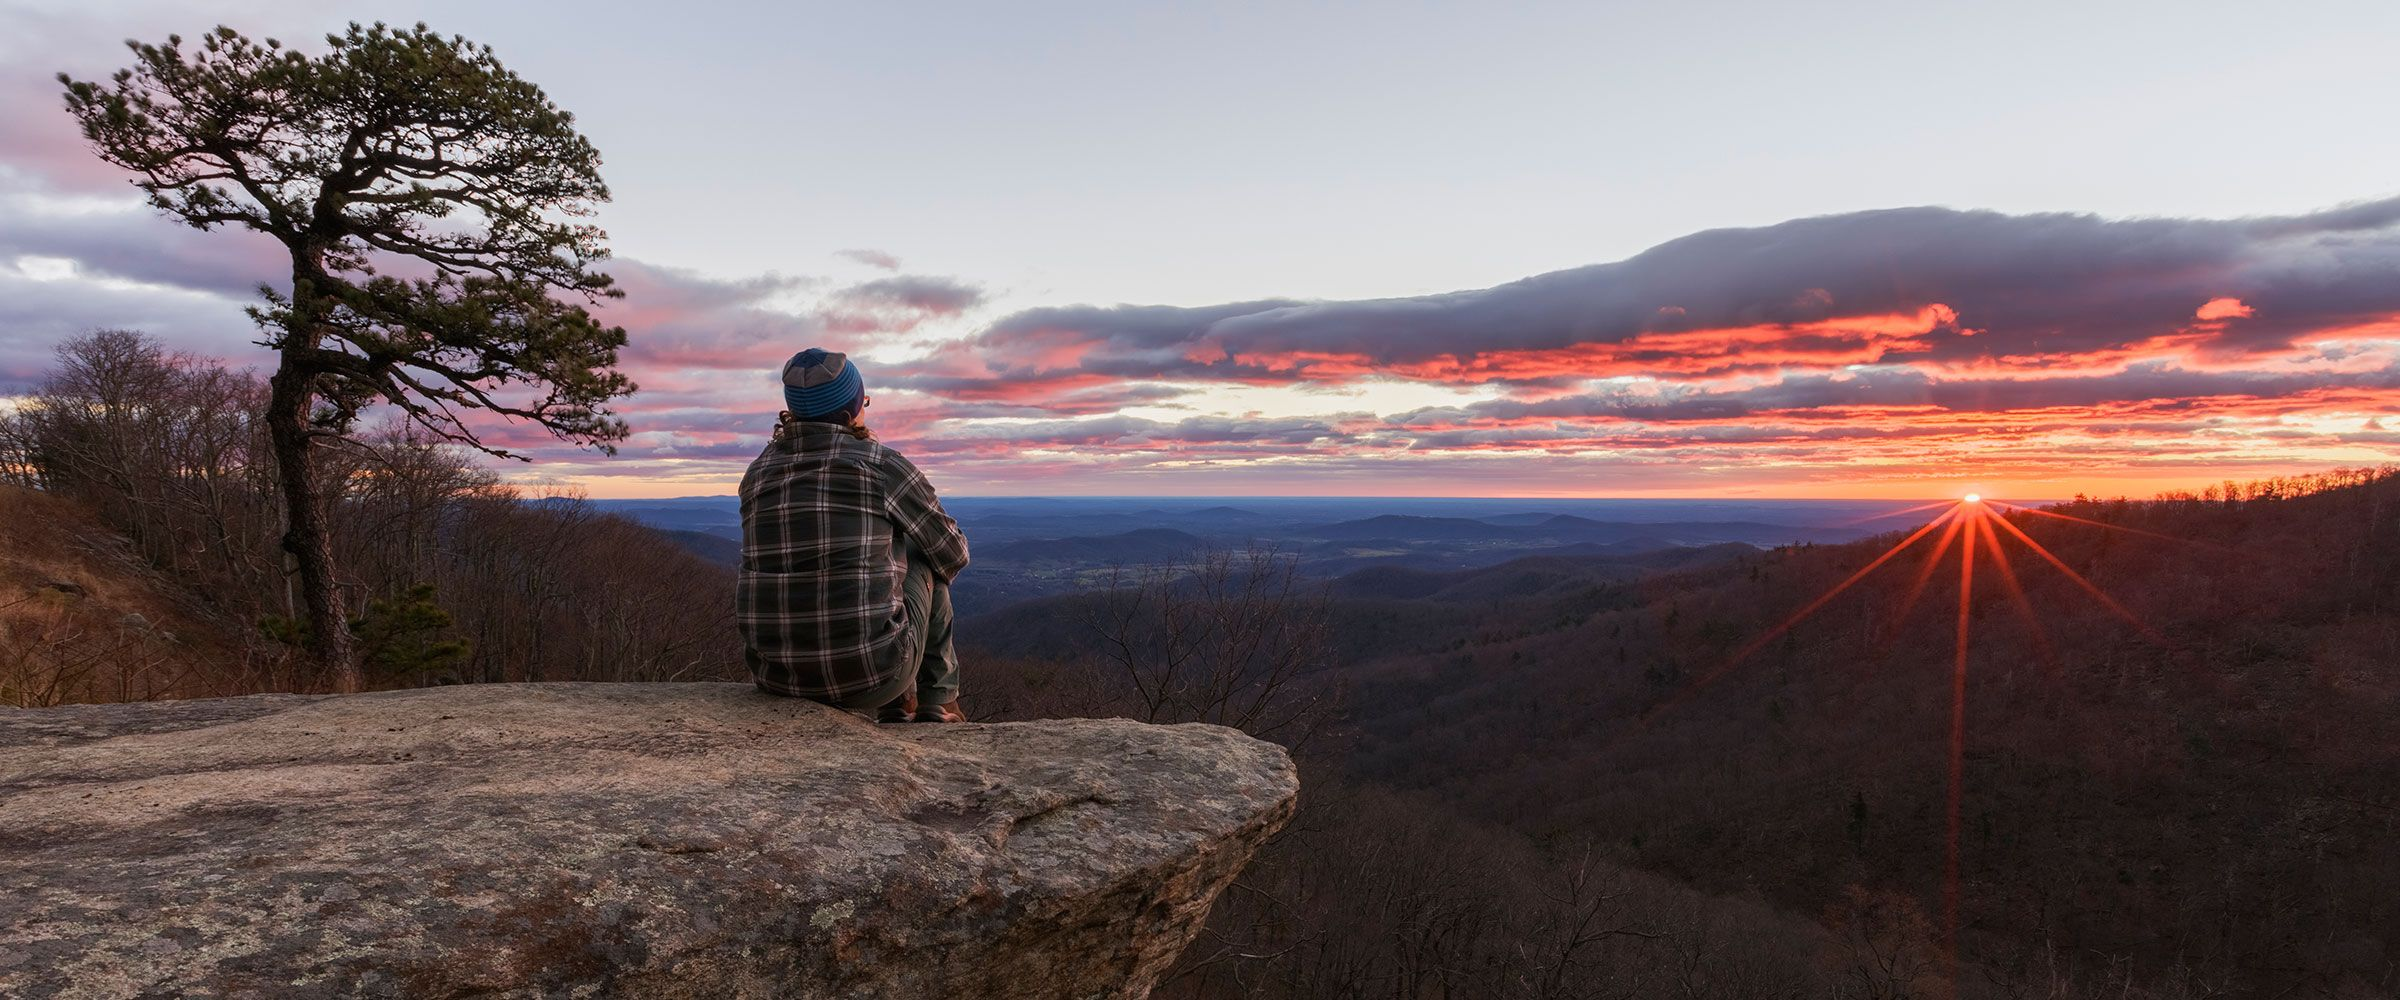 Surrounded by the Blue Ridge Mountains, this expansive valley is anchored by Shenandoah National Park and is home to picture-postcard towns, wineries, historic landmarks and outdoor adventures. Its closest point is about 120 kilometers from Washington DC. #VisiTheUSA